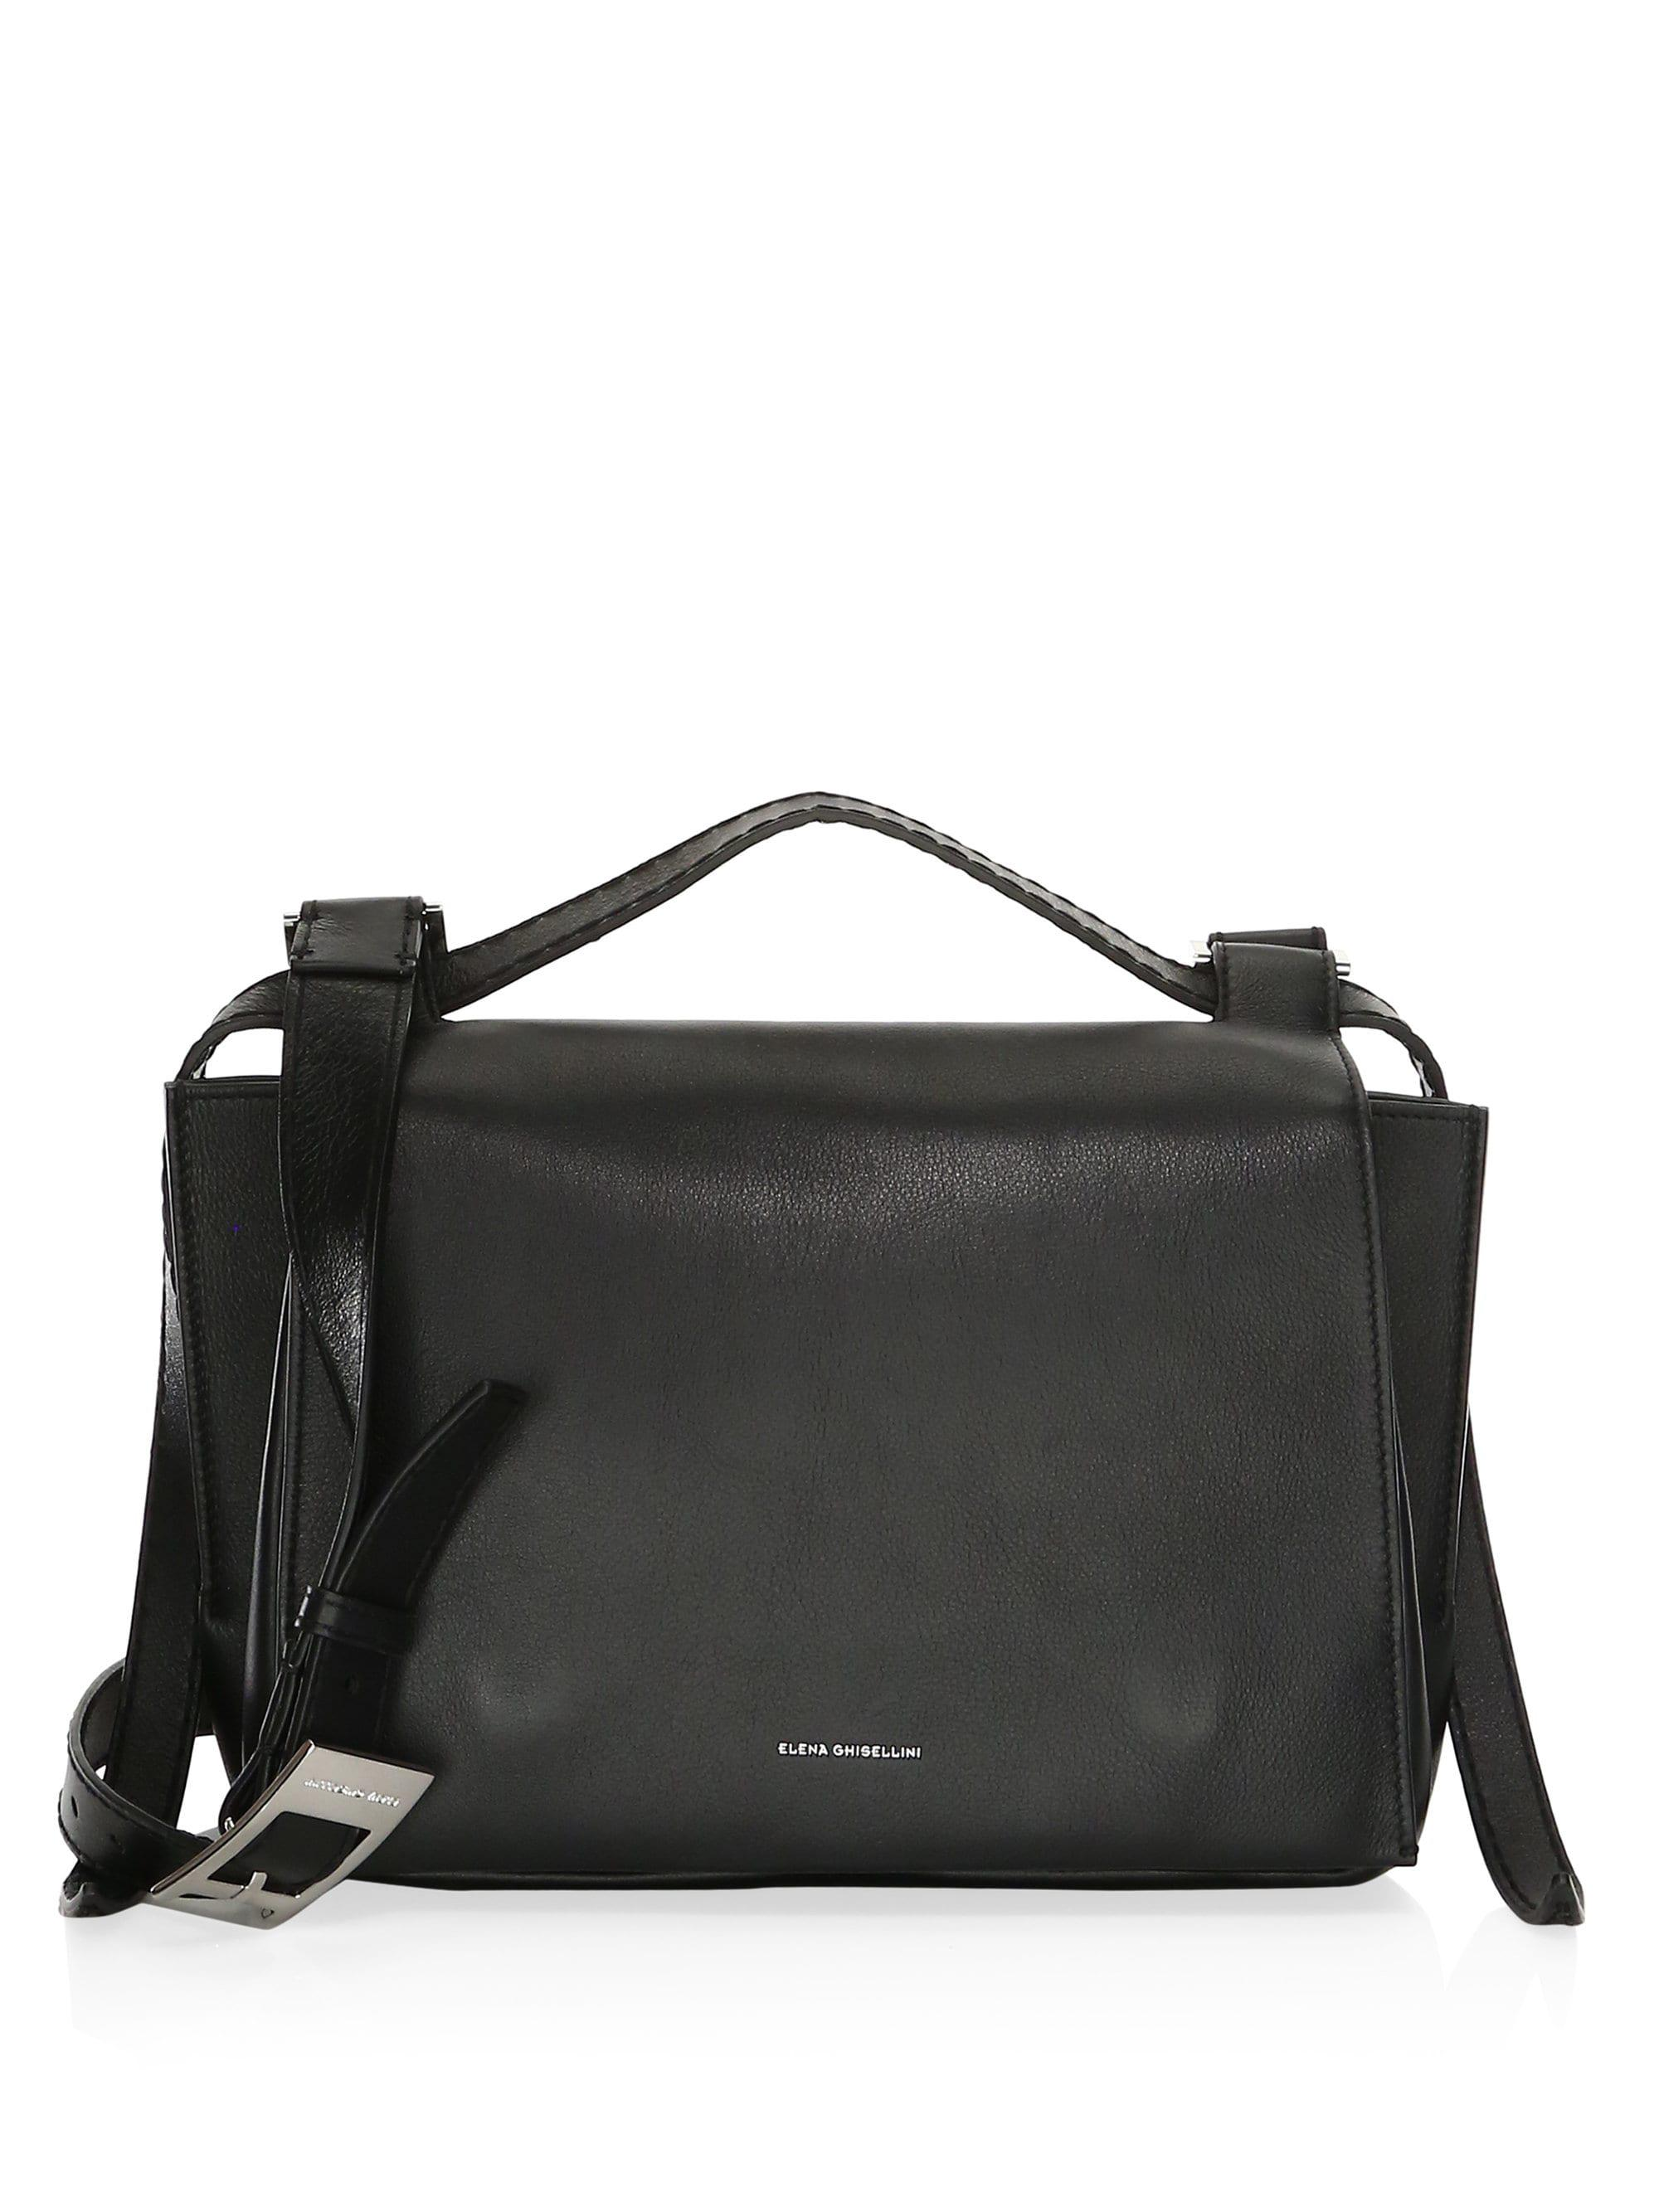 5cc91505690 Elena Ghisellini - Black Medium Leather Shoulder Flap Bag - Lyst. View  fullscreen